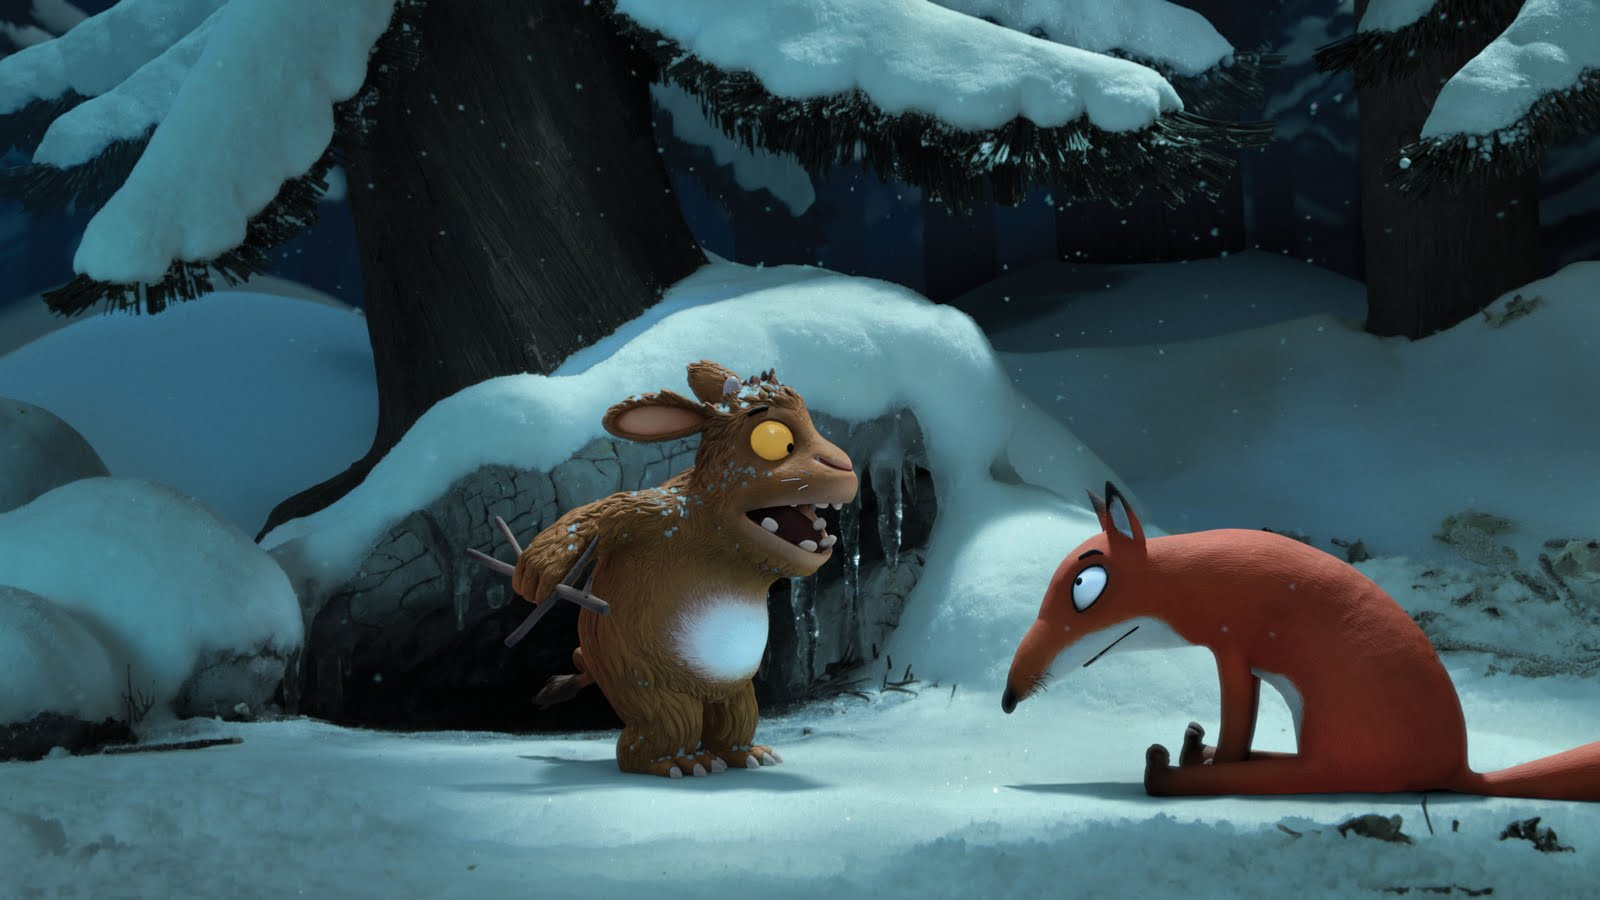 The Gruffalo's Child meets the Fox